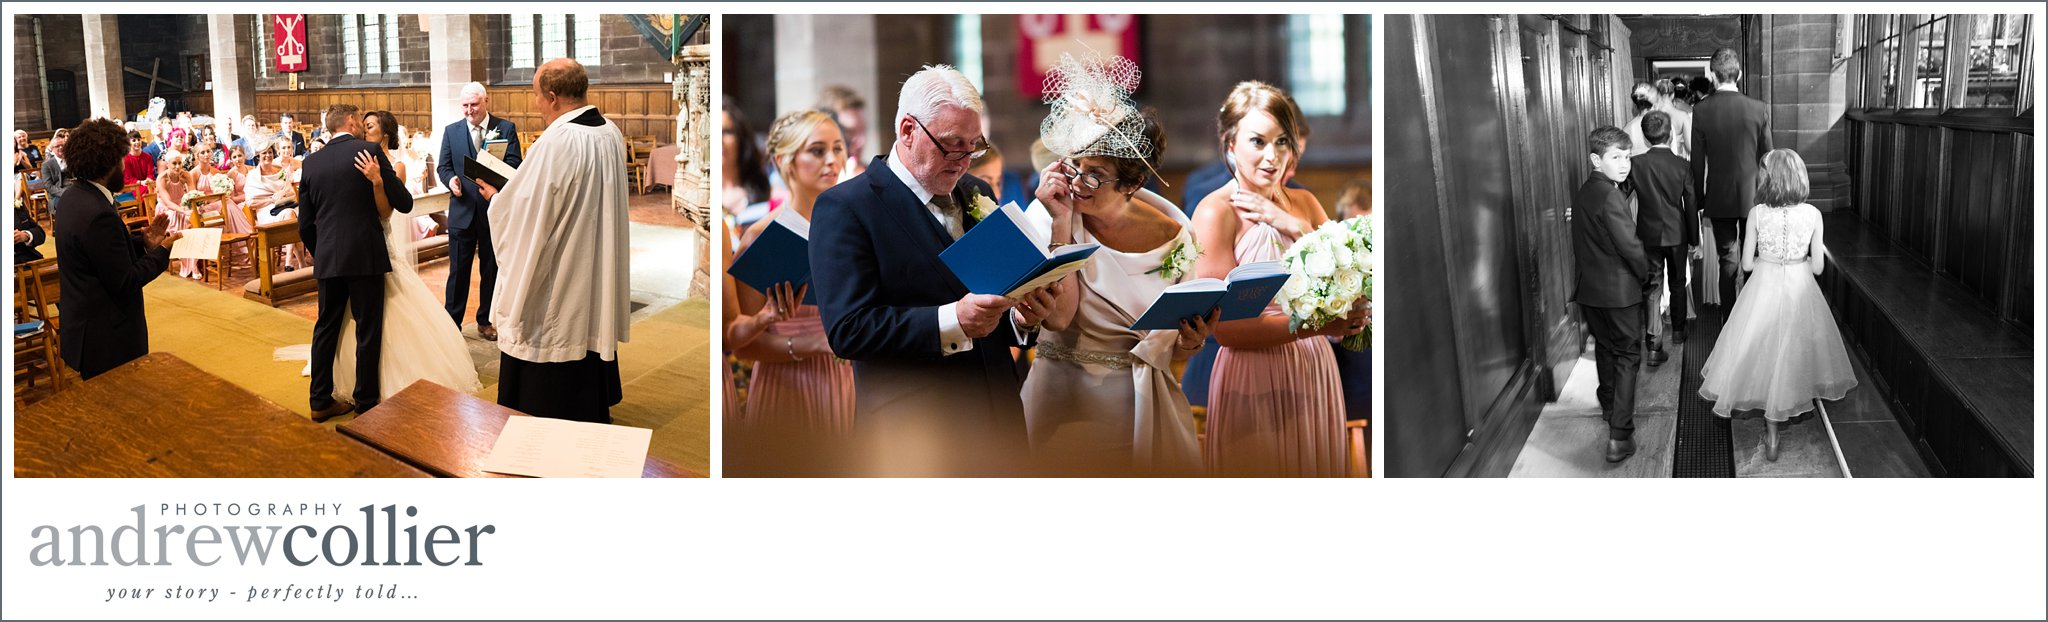 Informal wedding photography in in Church using available light